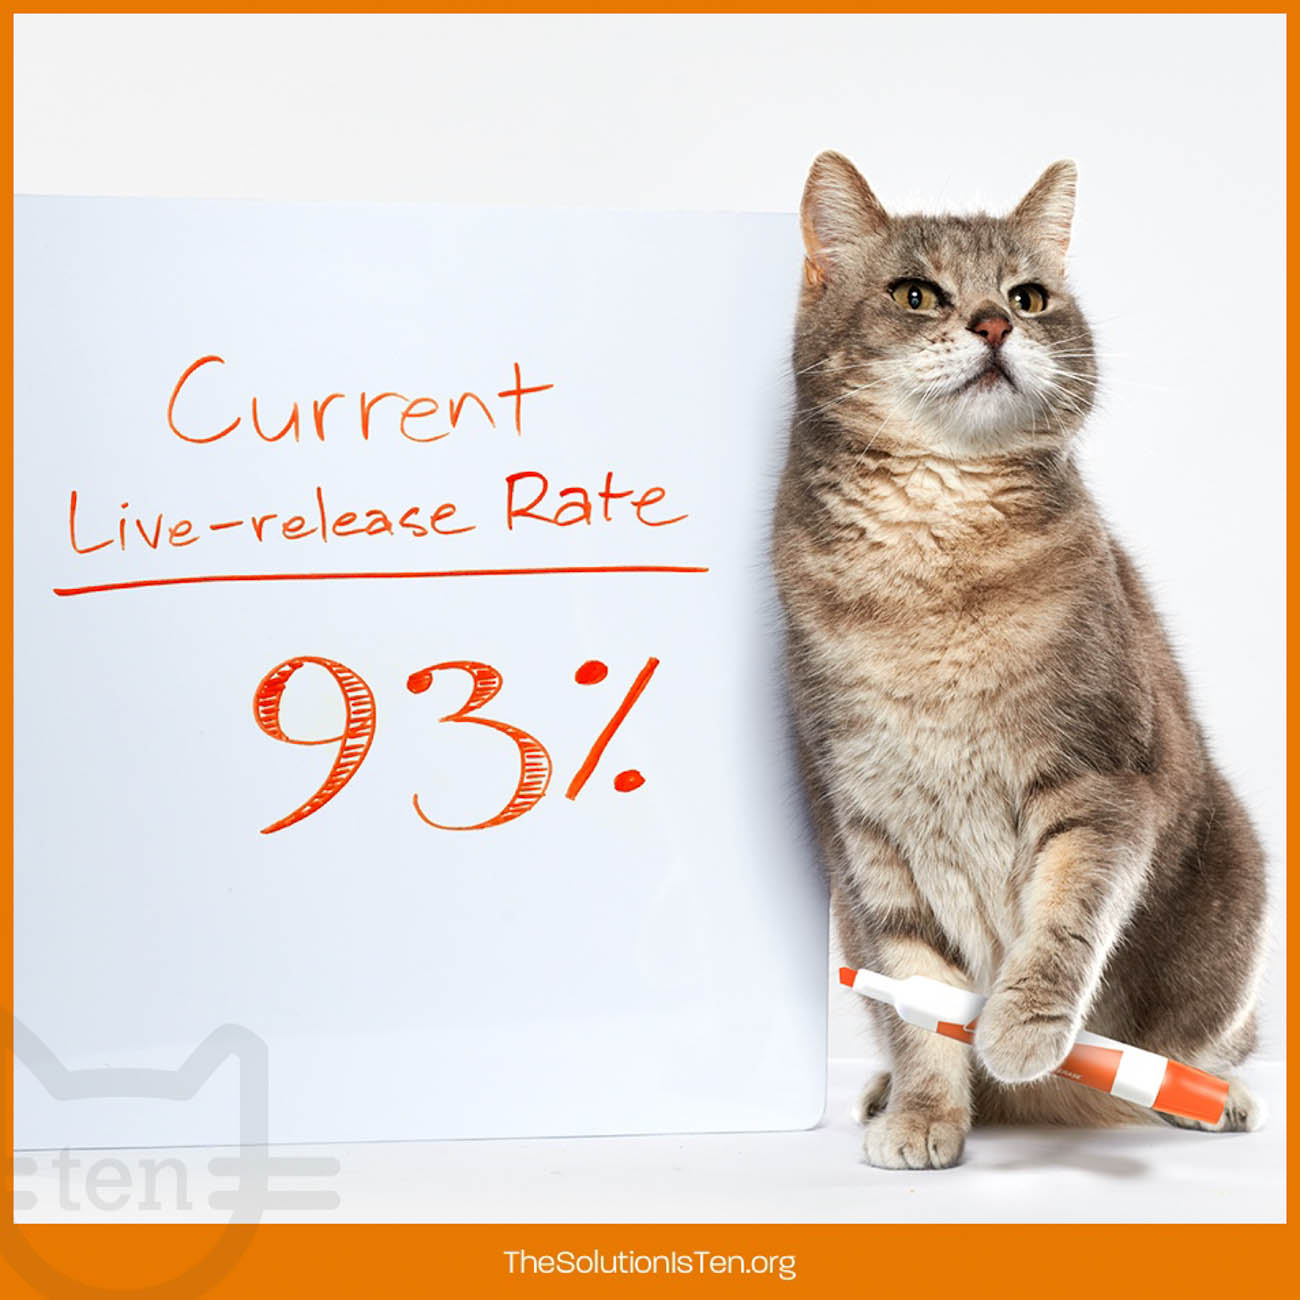 <p>The no-kill rate at the end of 2018 was at 93% in local animal shelters, which is the first time the average annual rate was over 90%. Scooter's campaign is believed to have affected these positive results. / Image courtesy of The Ten Movement // Published: 2.17.19</p>